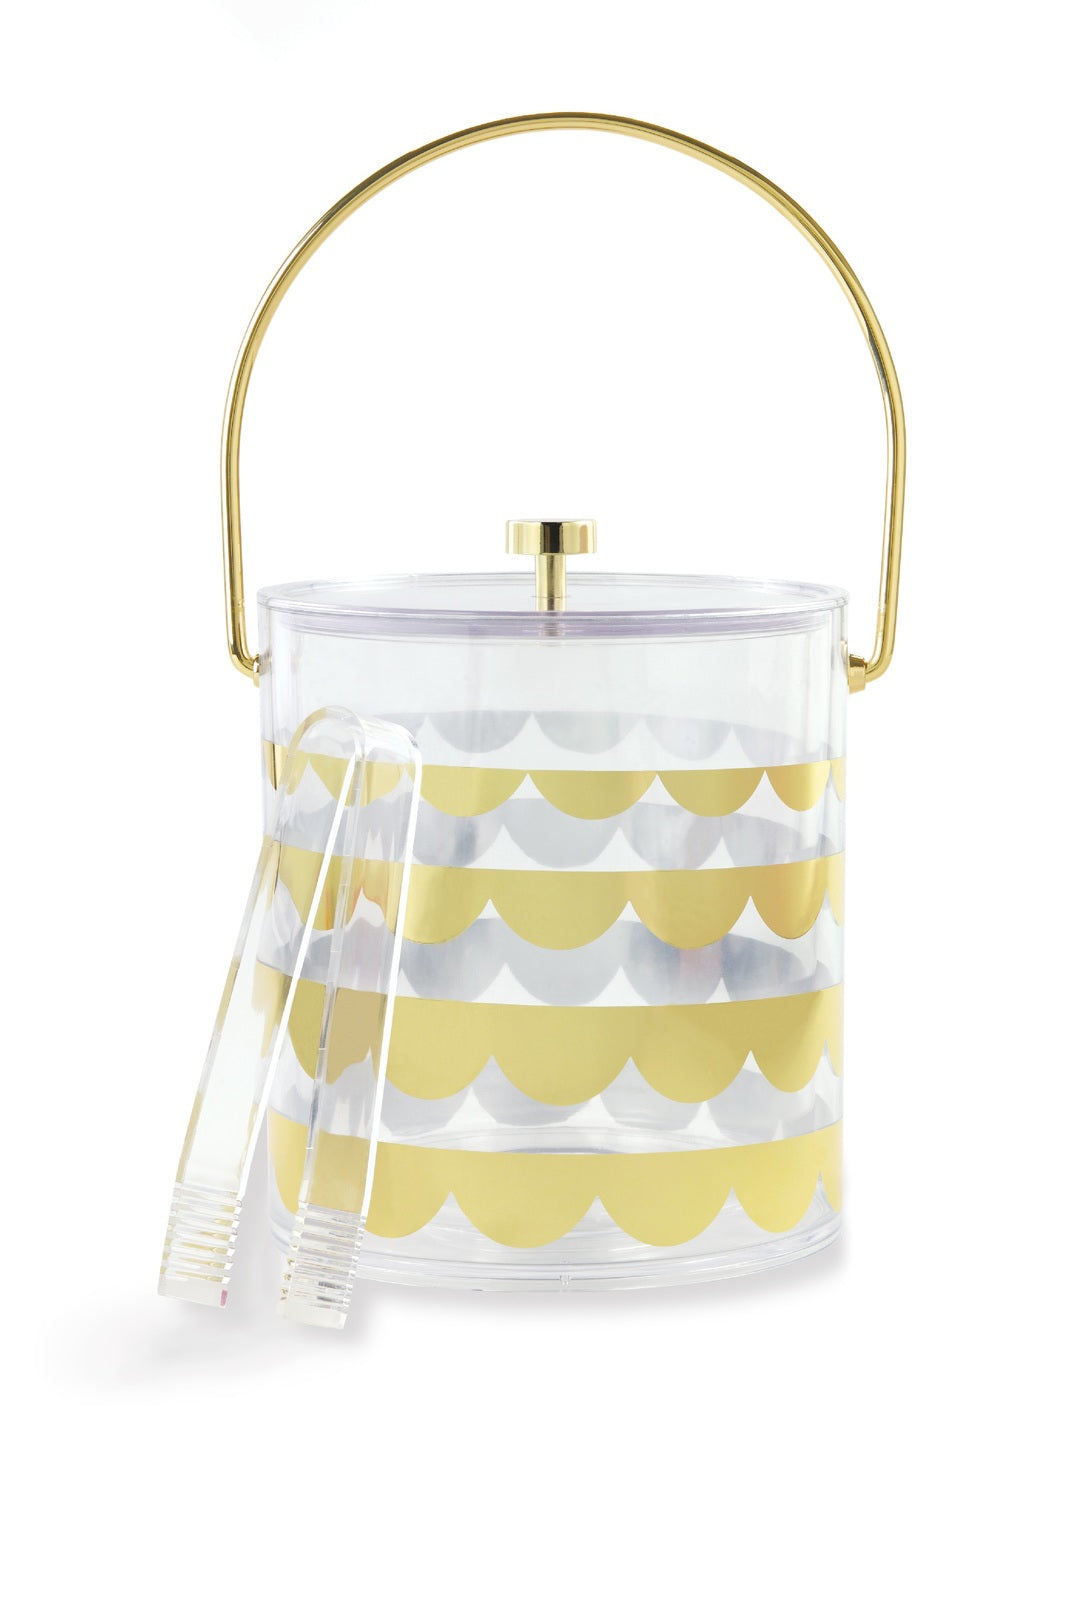 Kate Spade: Acrylic Ice Bucket - Scallop